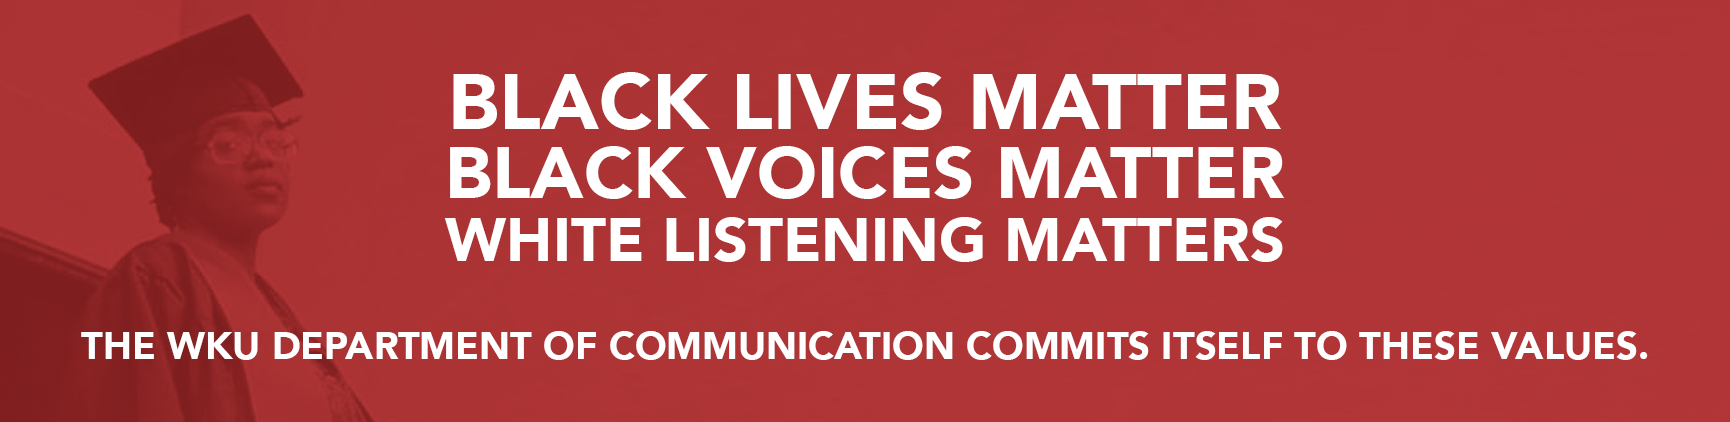 Black Lives Matter  Black Voices Matter  White Listening Matters  The WKU Department of Communication commits itself to these values.